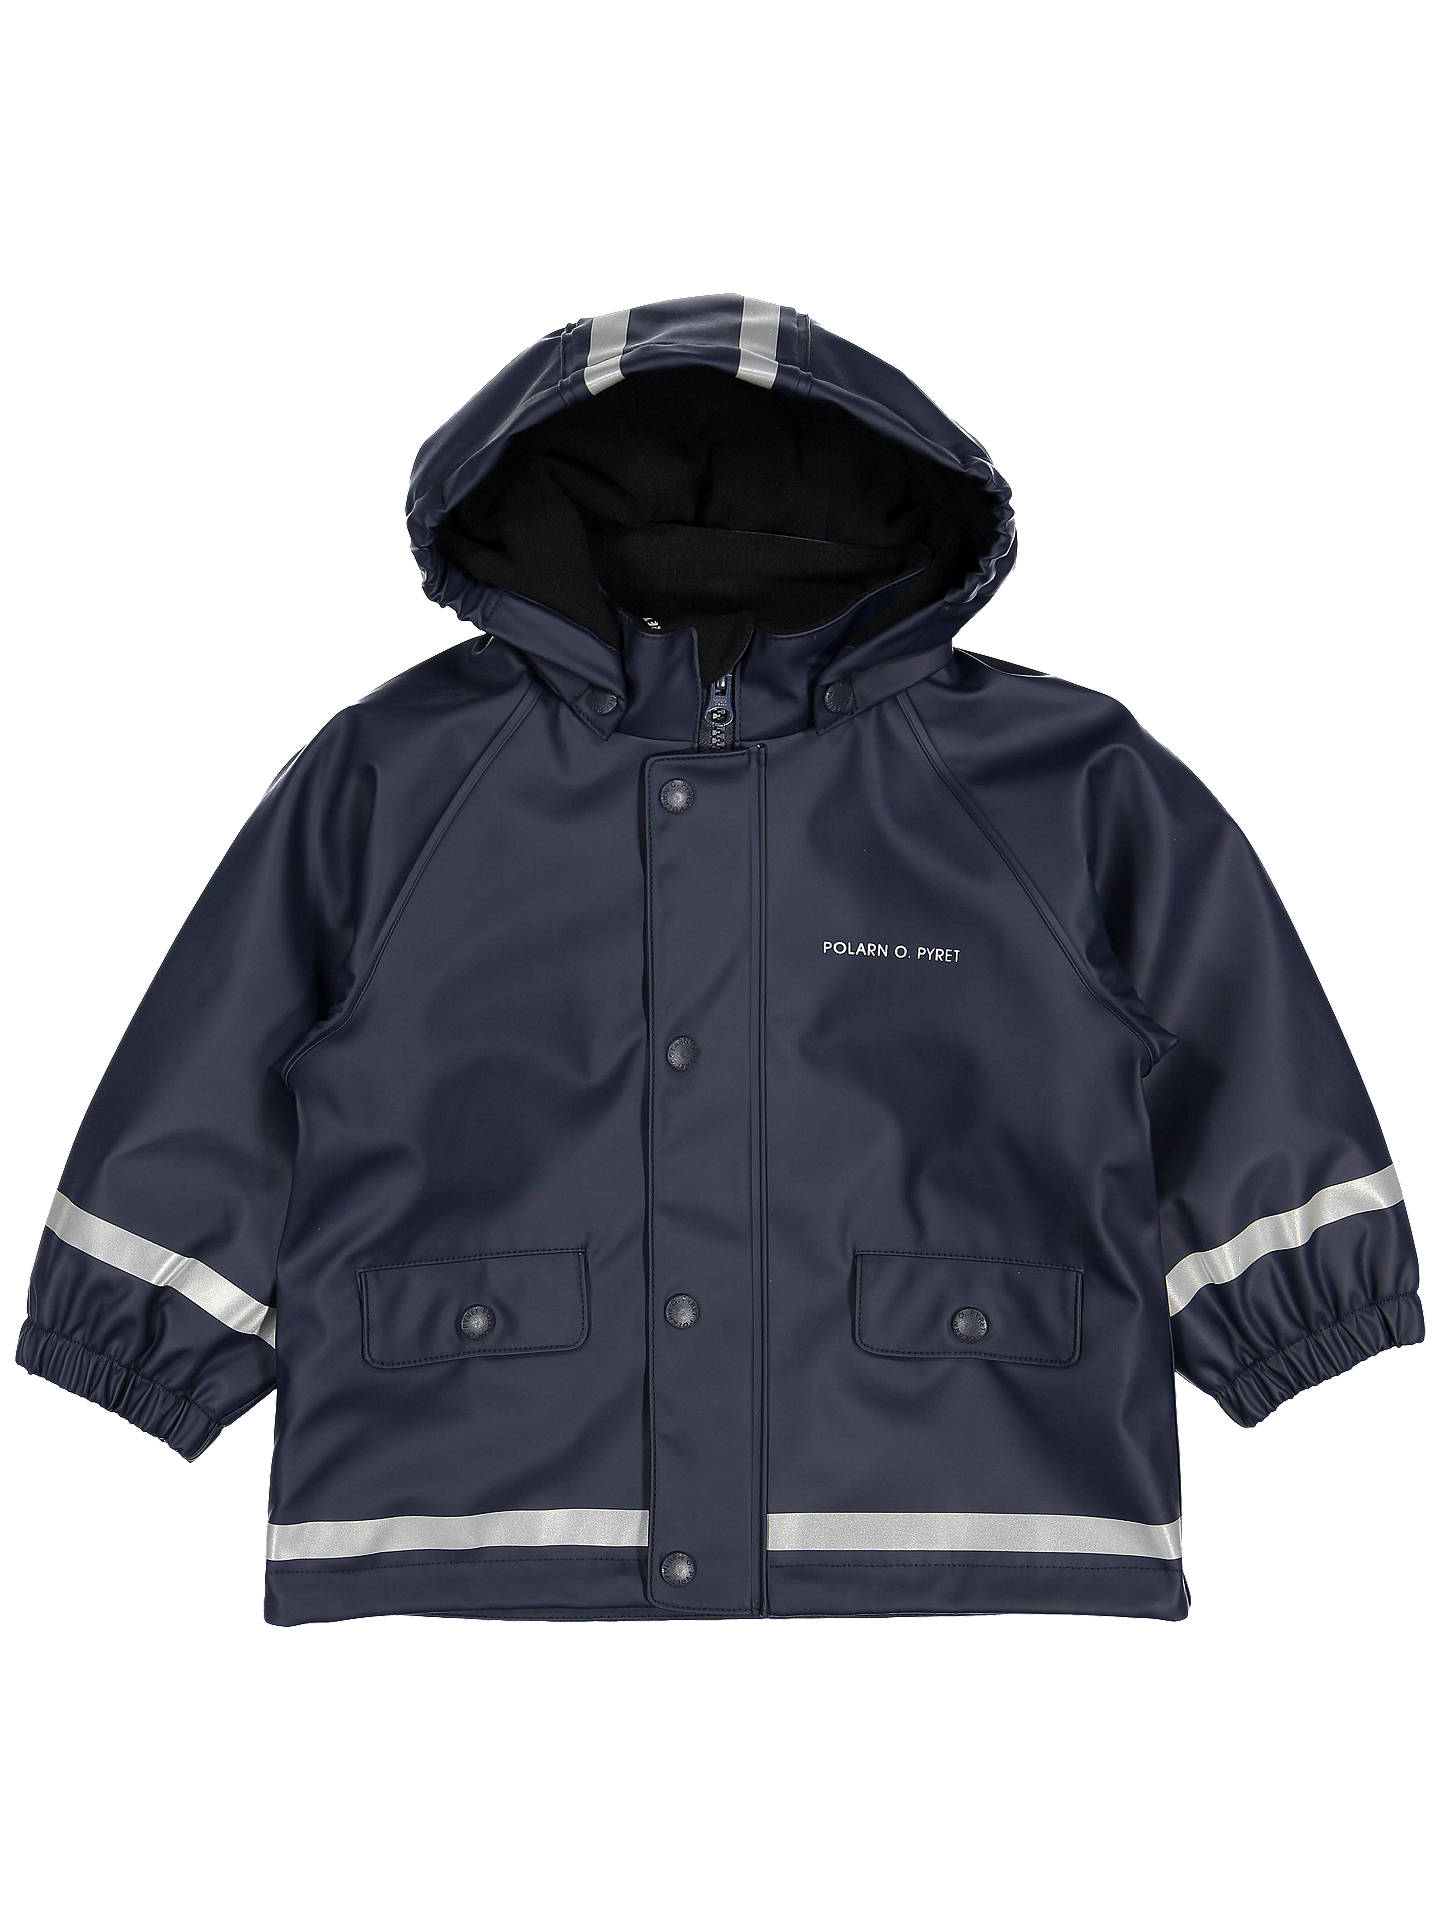 BuyPolarn O. Pyret Baby Raincoat, Blue, 12-24 months Online at johnlewis.com